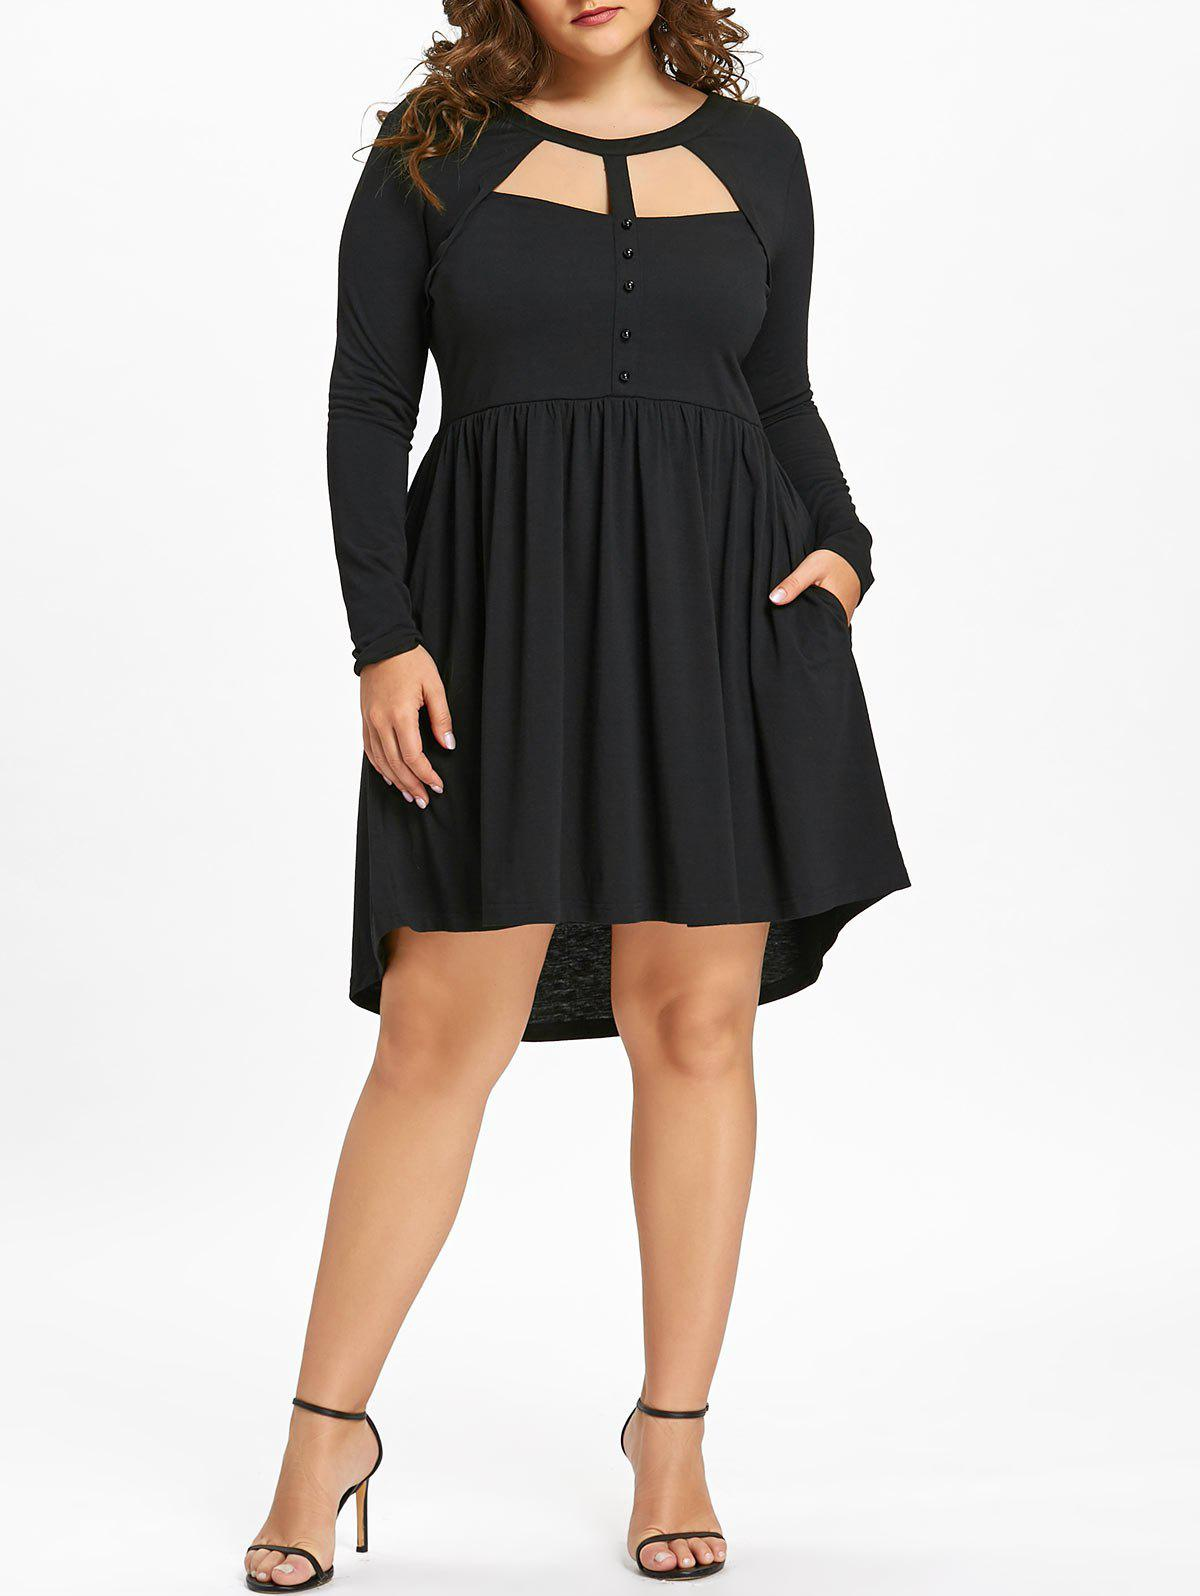 Fancy Plus Size Mesh Trim Cutout Long Sleeve Dress